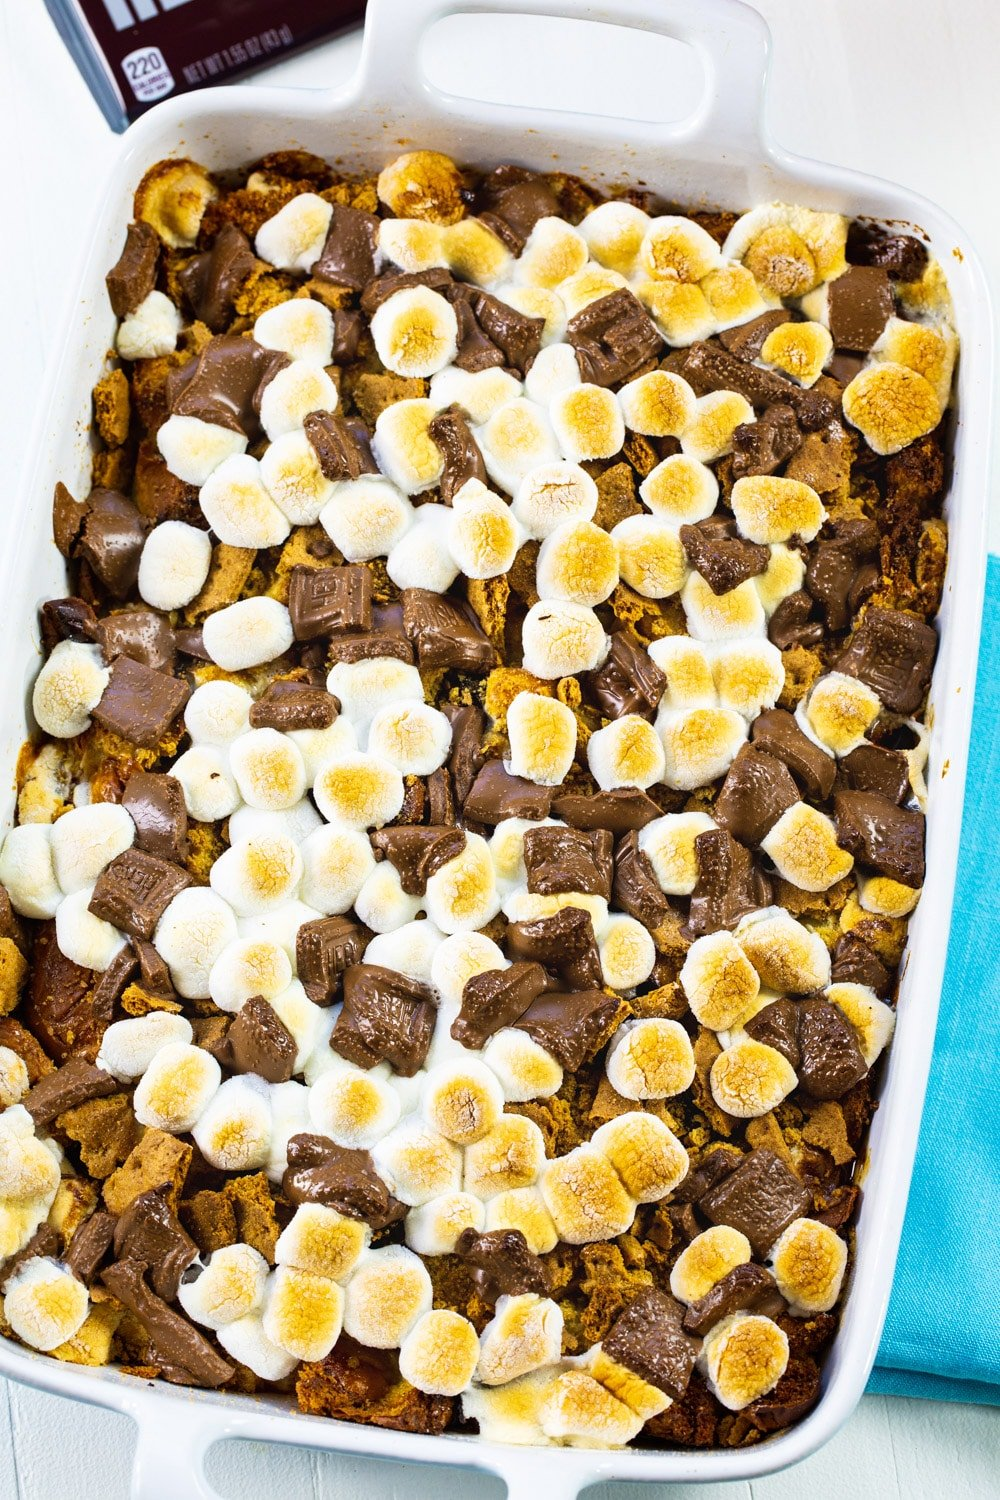 S'mores-style bread pudding in a 9x13-inch baking dish.